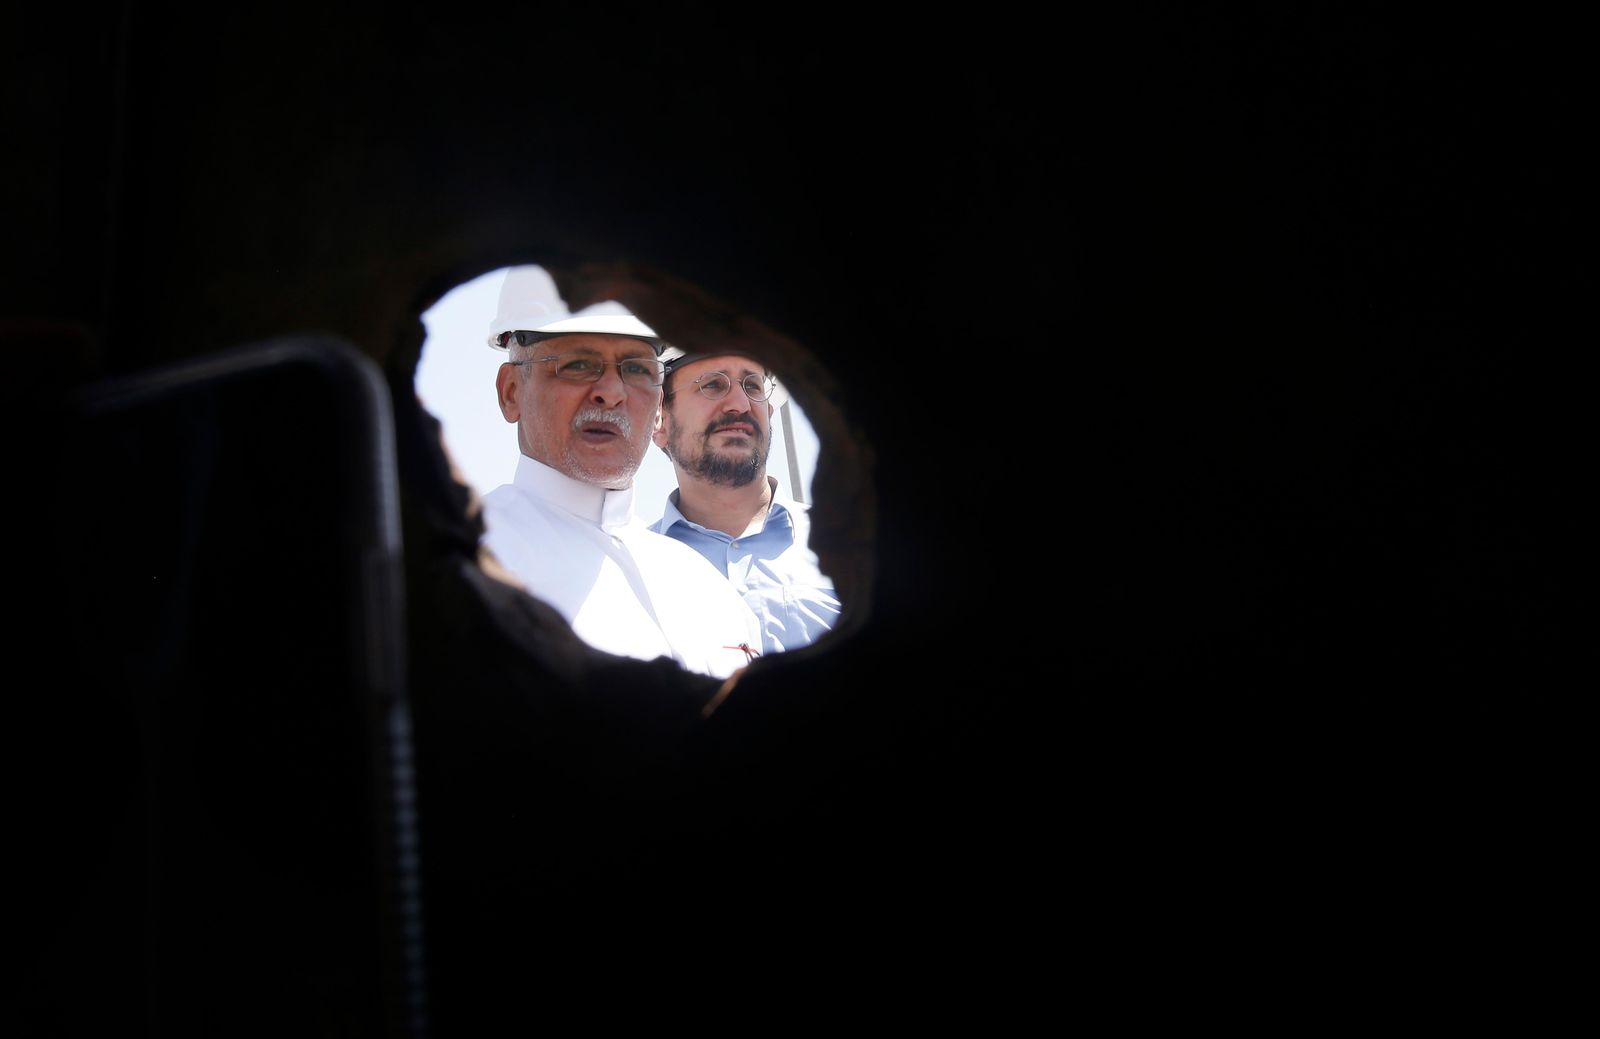 In this photo opportunity during a trip organized by Saudi information ministry, Aramco workers are seen through a hole in a damaged pipe in the Khurais oil field in Khurais, Saudi Arabia, Friday, Sept. 20, 2019, after it was hit during Sept. 14 attack. Saudi officials brought journalists Friday to see the damage done in an attack the U.S. alleges Iran carried out. (AP Photo/Amr Nabil)